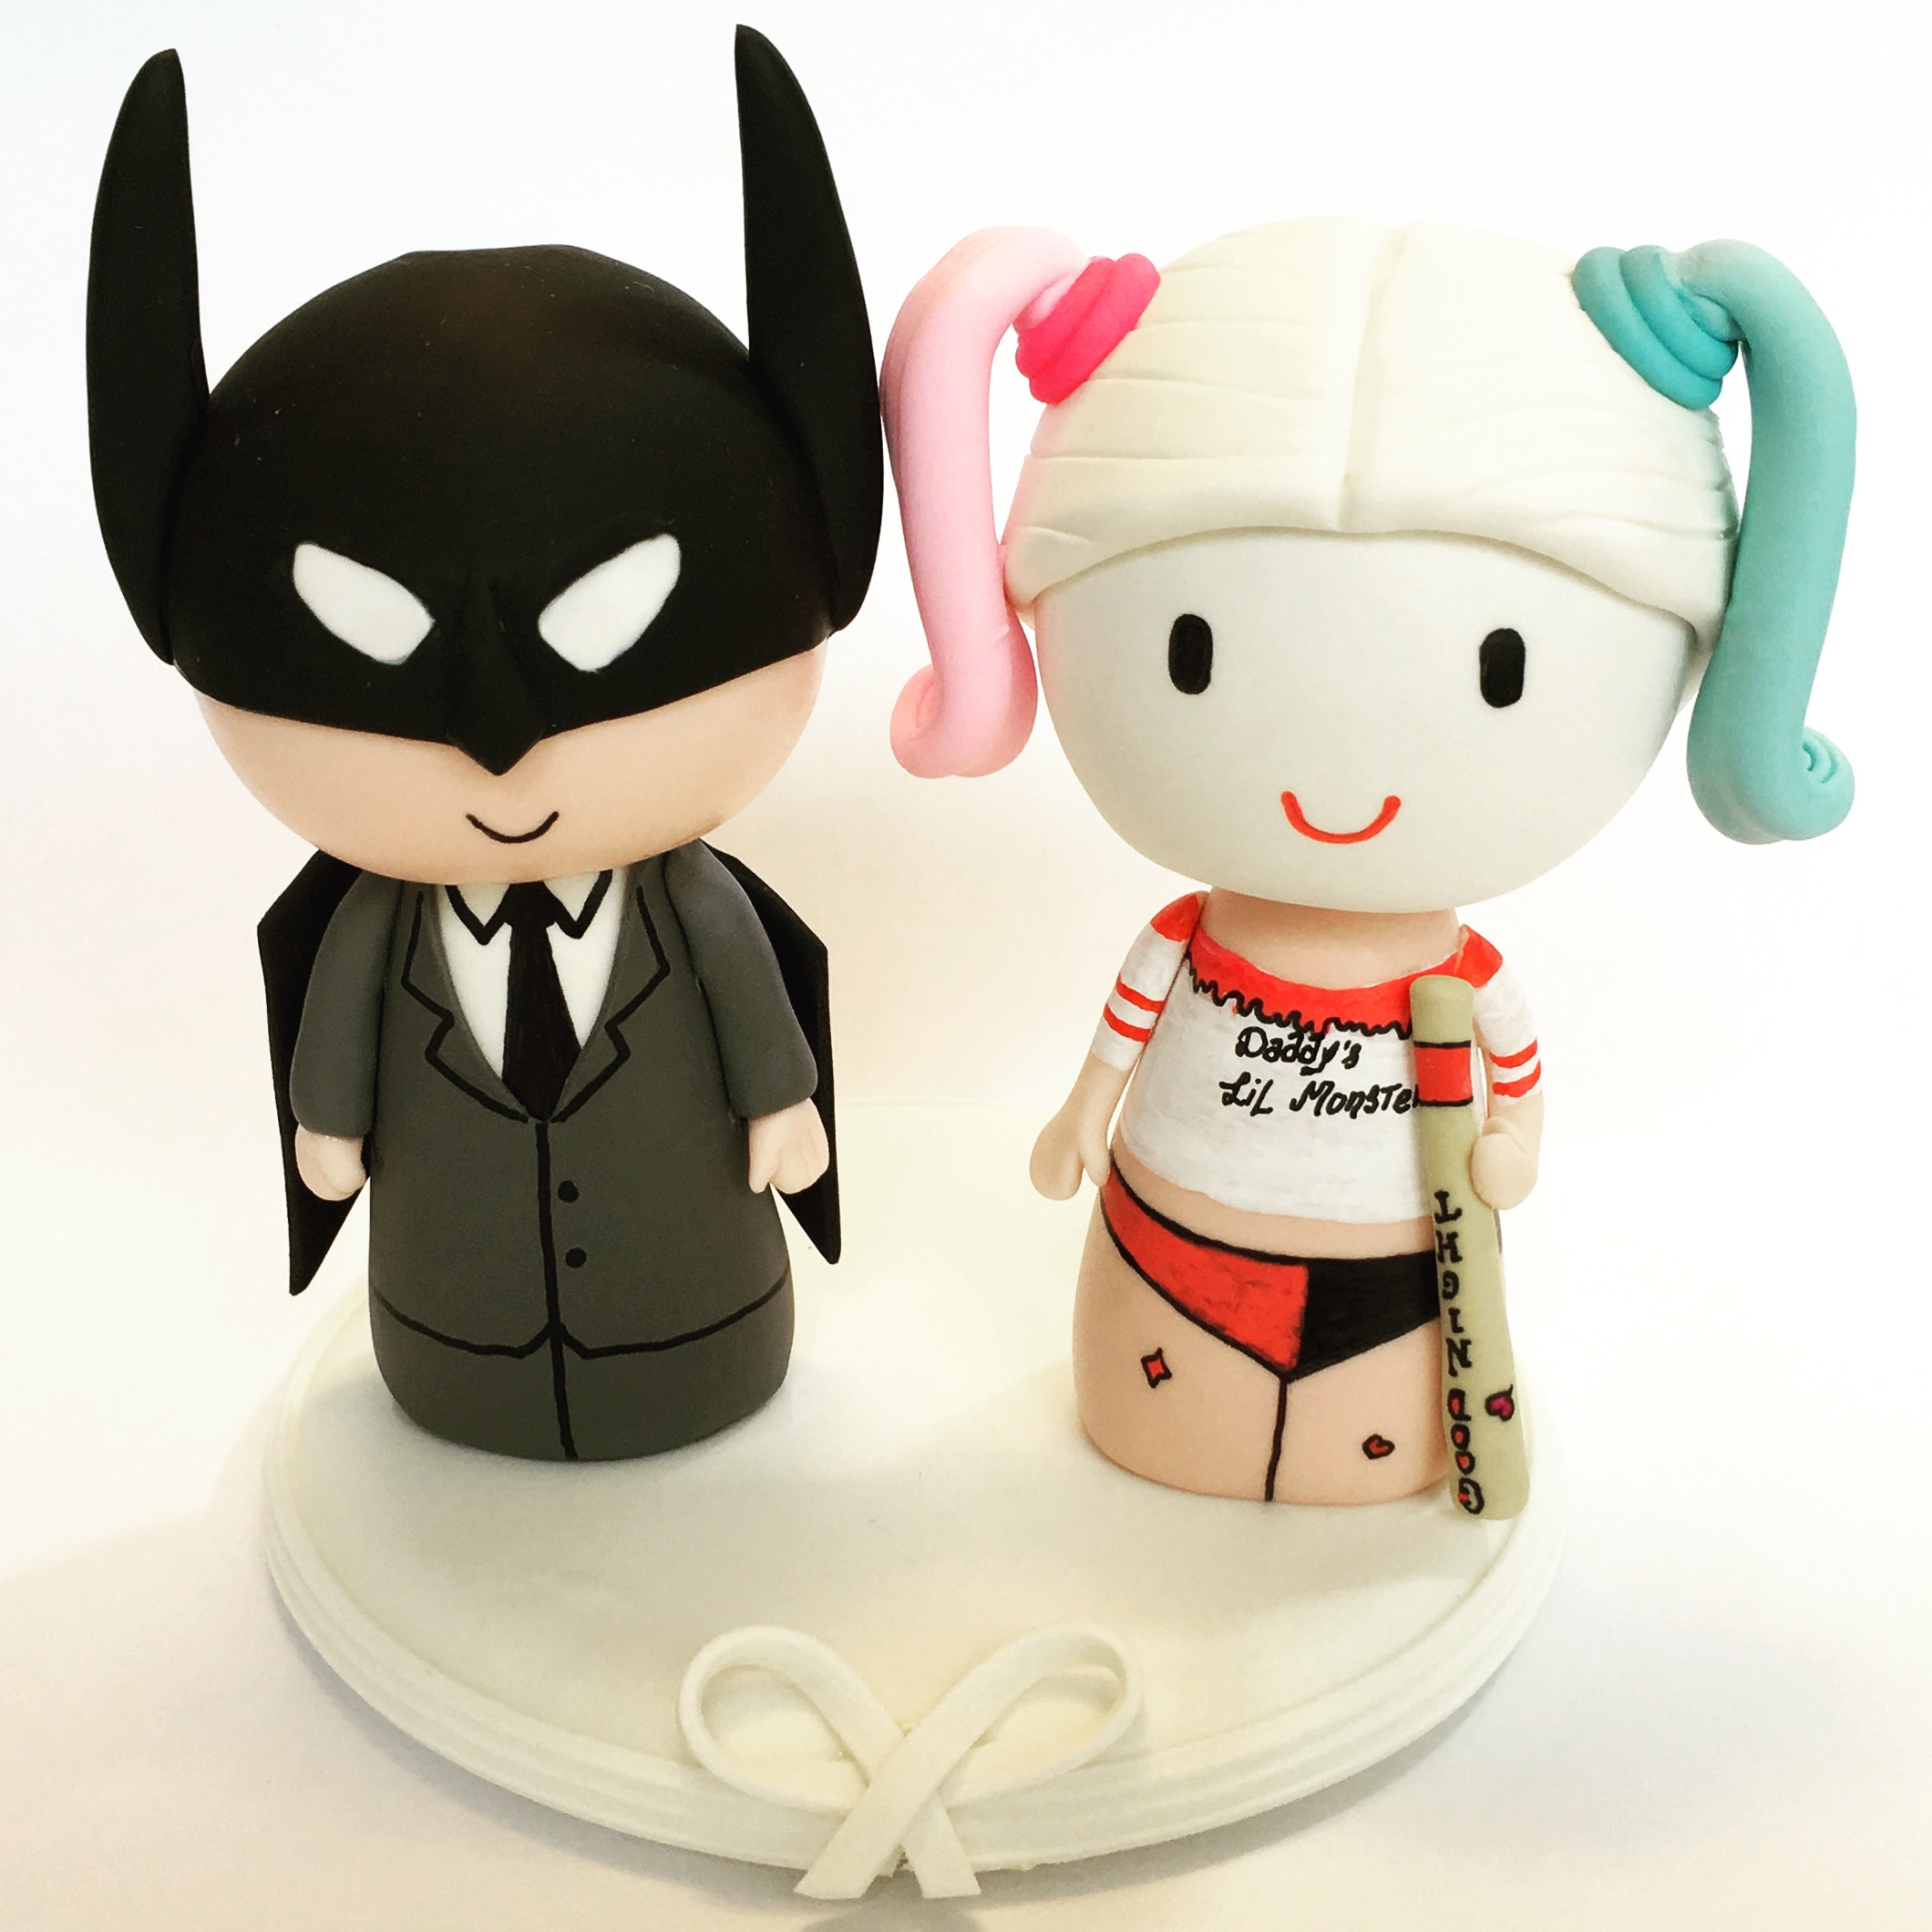 wedding cake topper-batman quinn